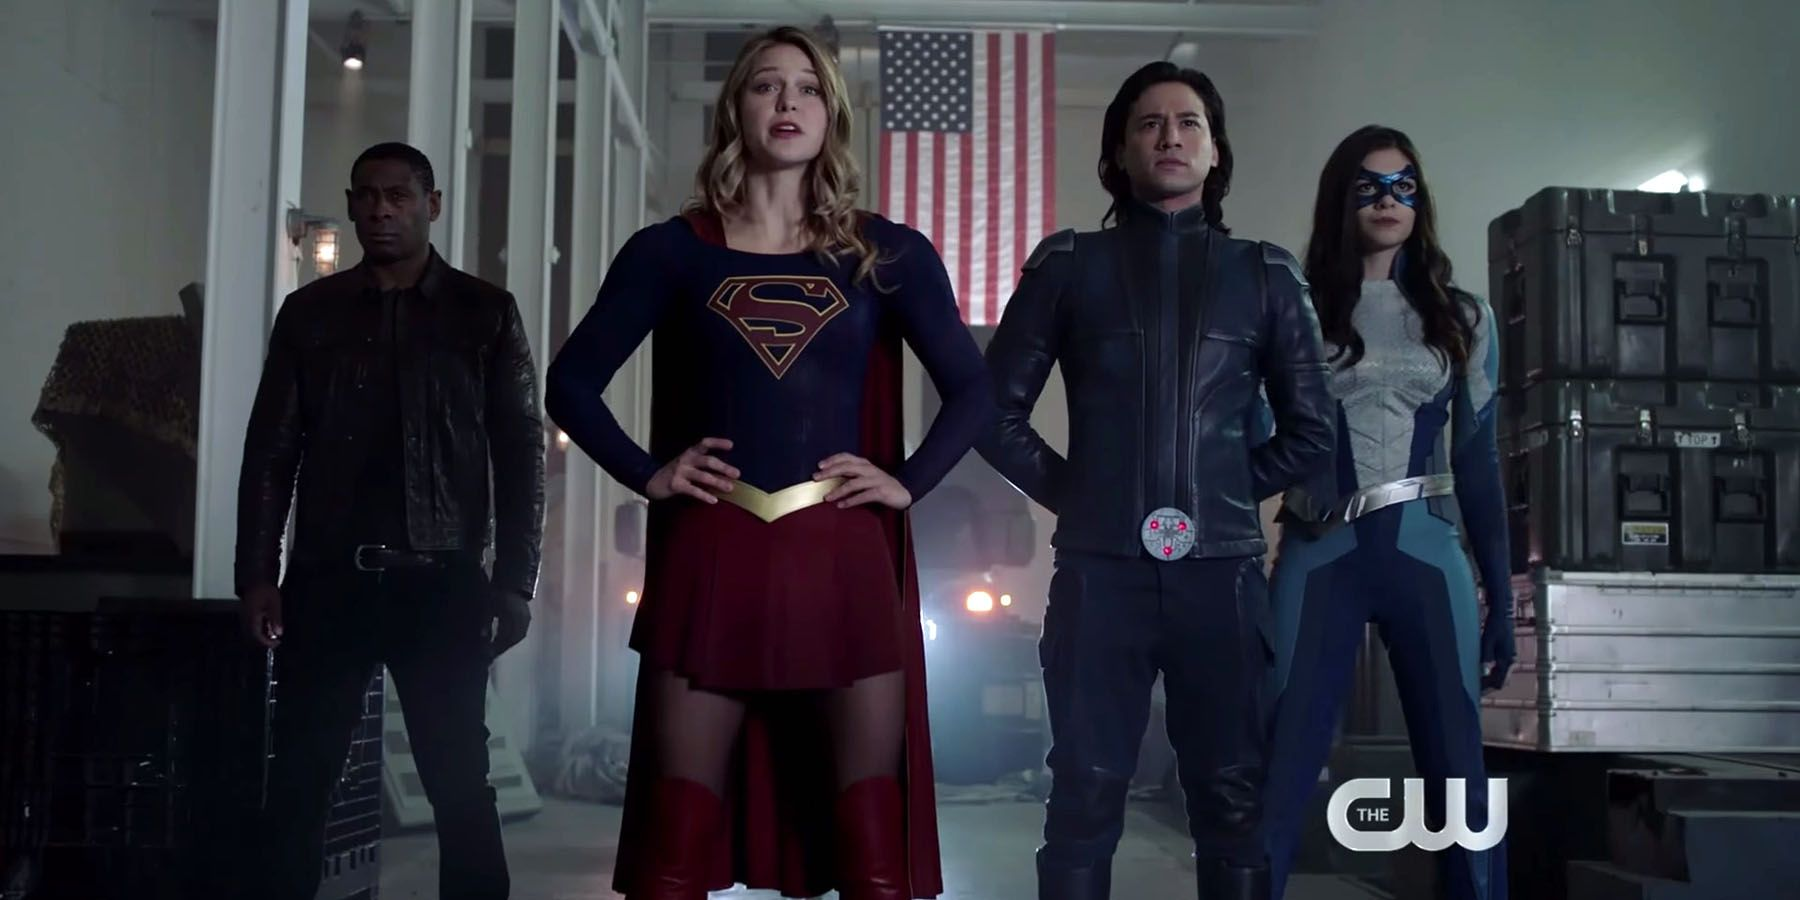 Supergirl Summons the Super Friends in New Promo